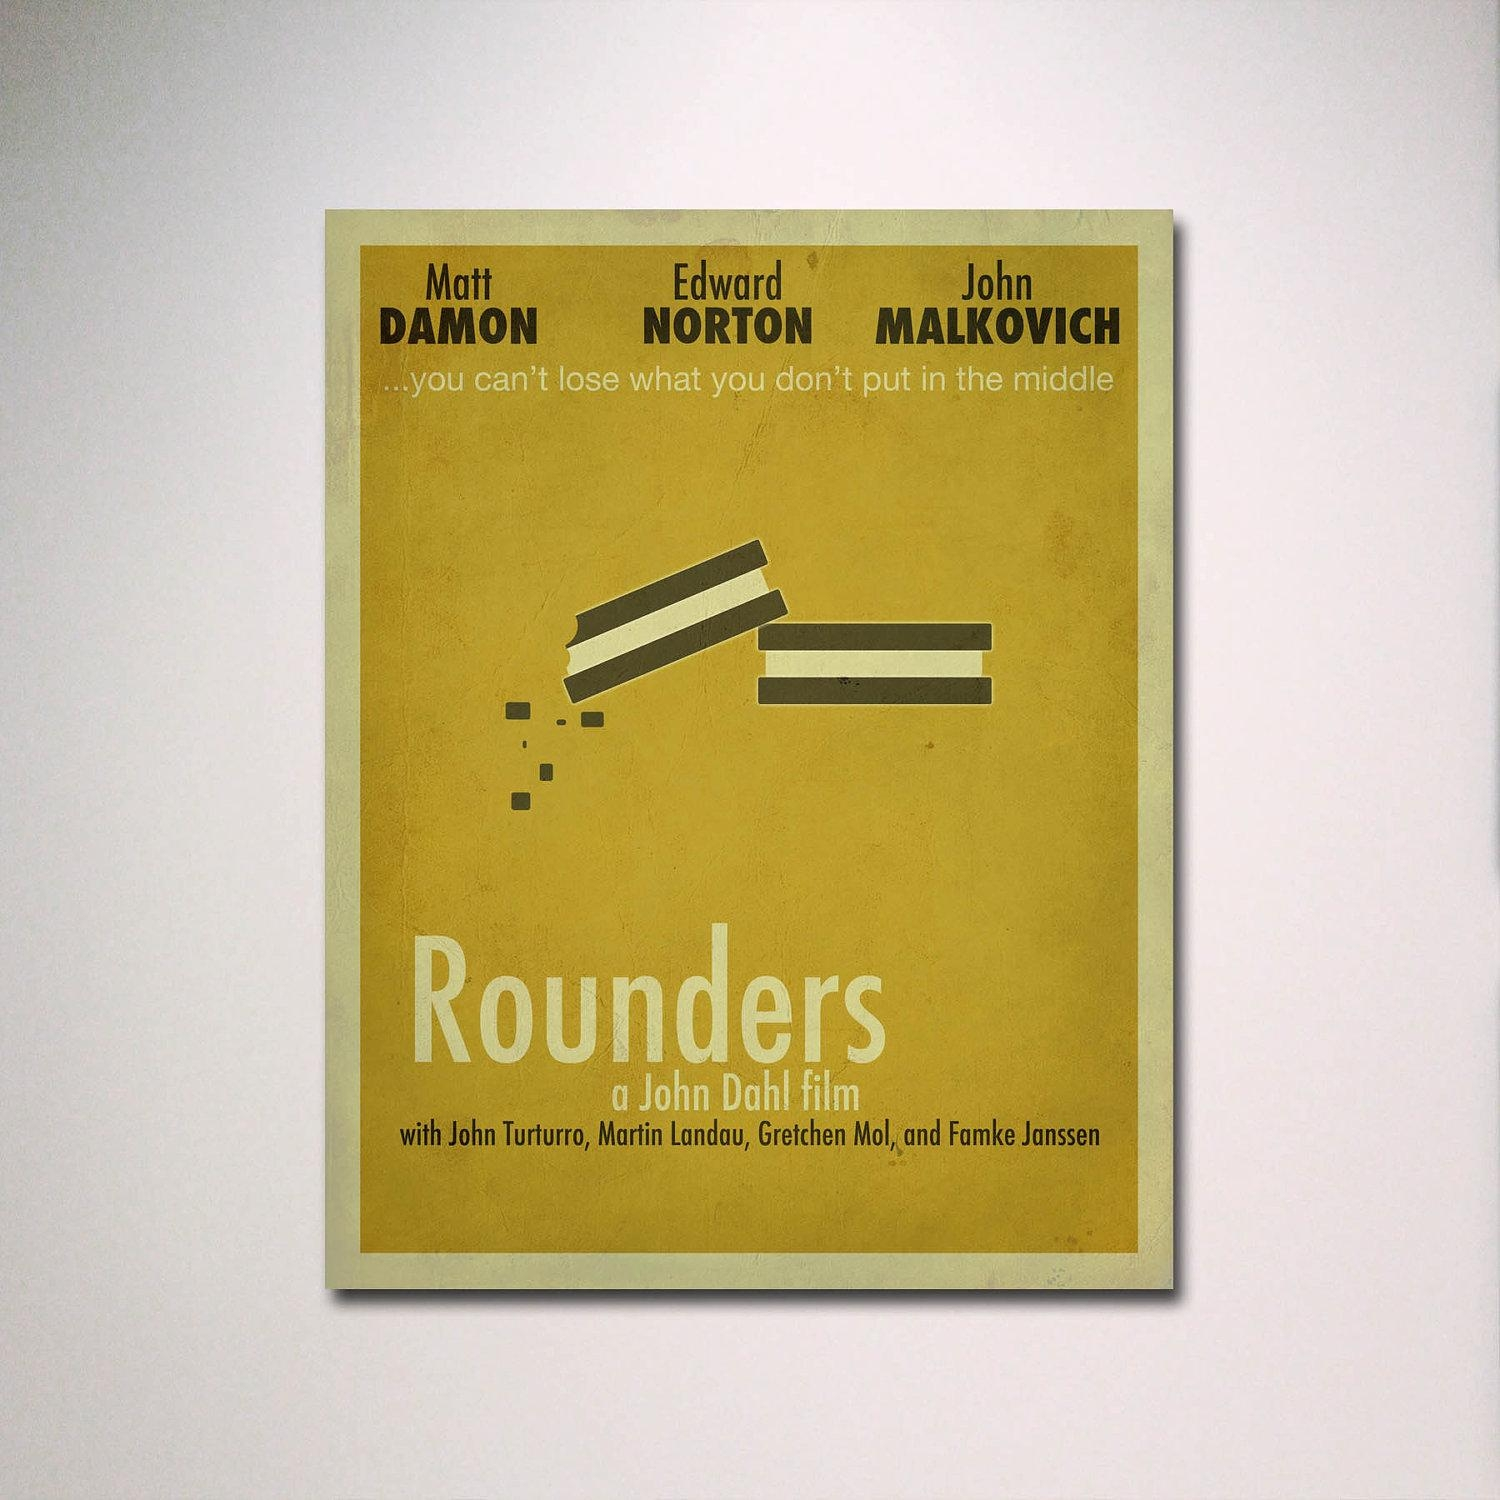 Rounders Minimalist Movie Poster / Poker Room / Movie Room / For Movie Themed Wall Art (Image 14 of 20)